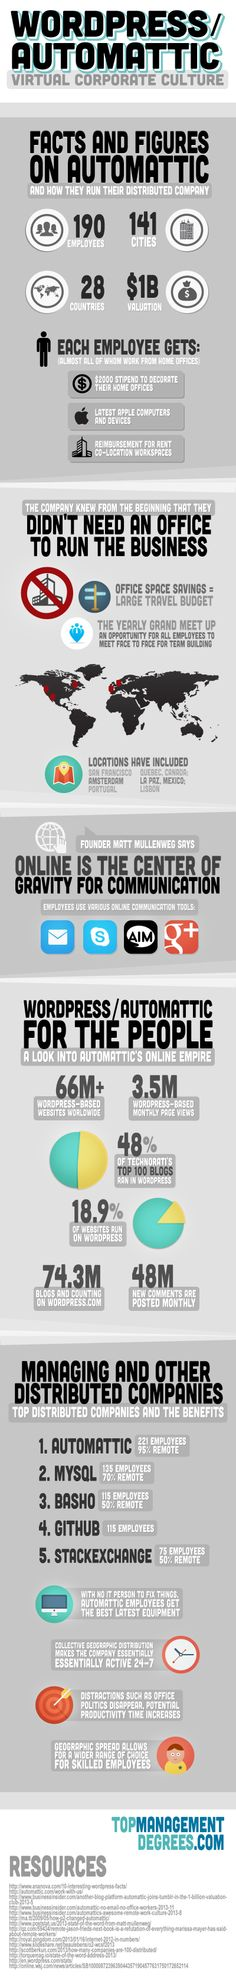 WordPress/Automattic Virtual Corporate Culture [INFOGRAPHIC] #WordPress #Automatic